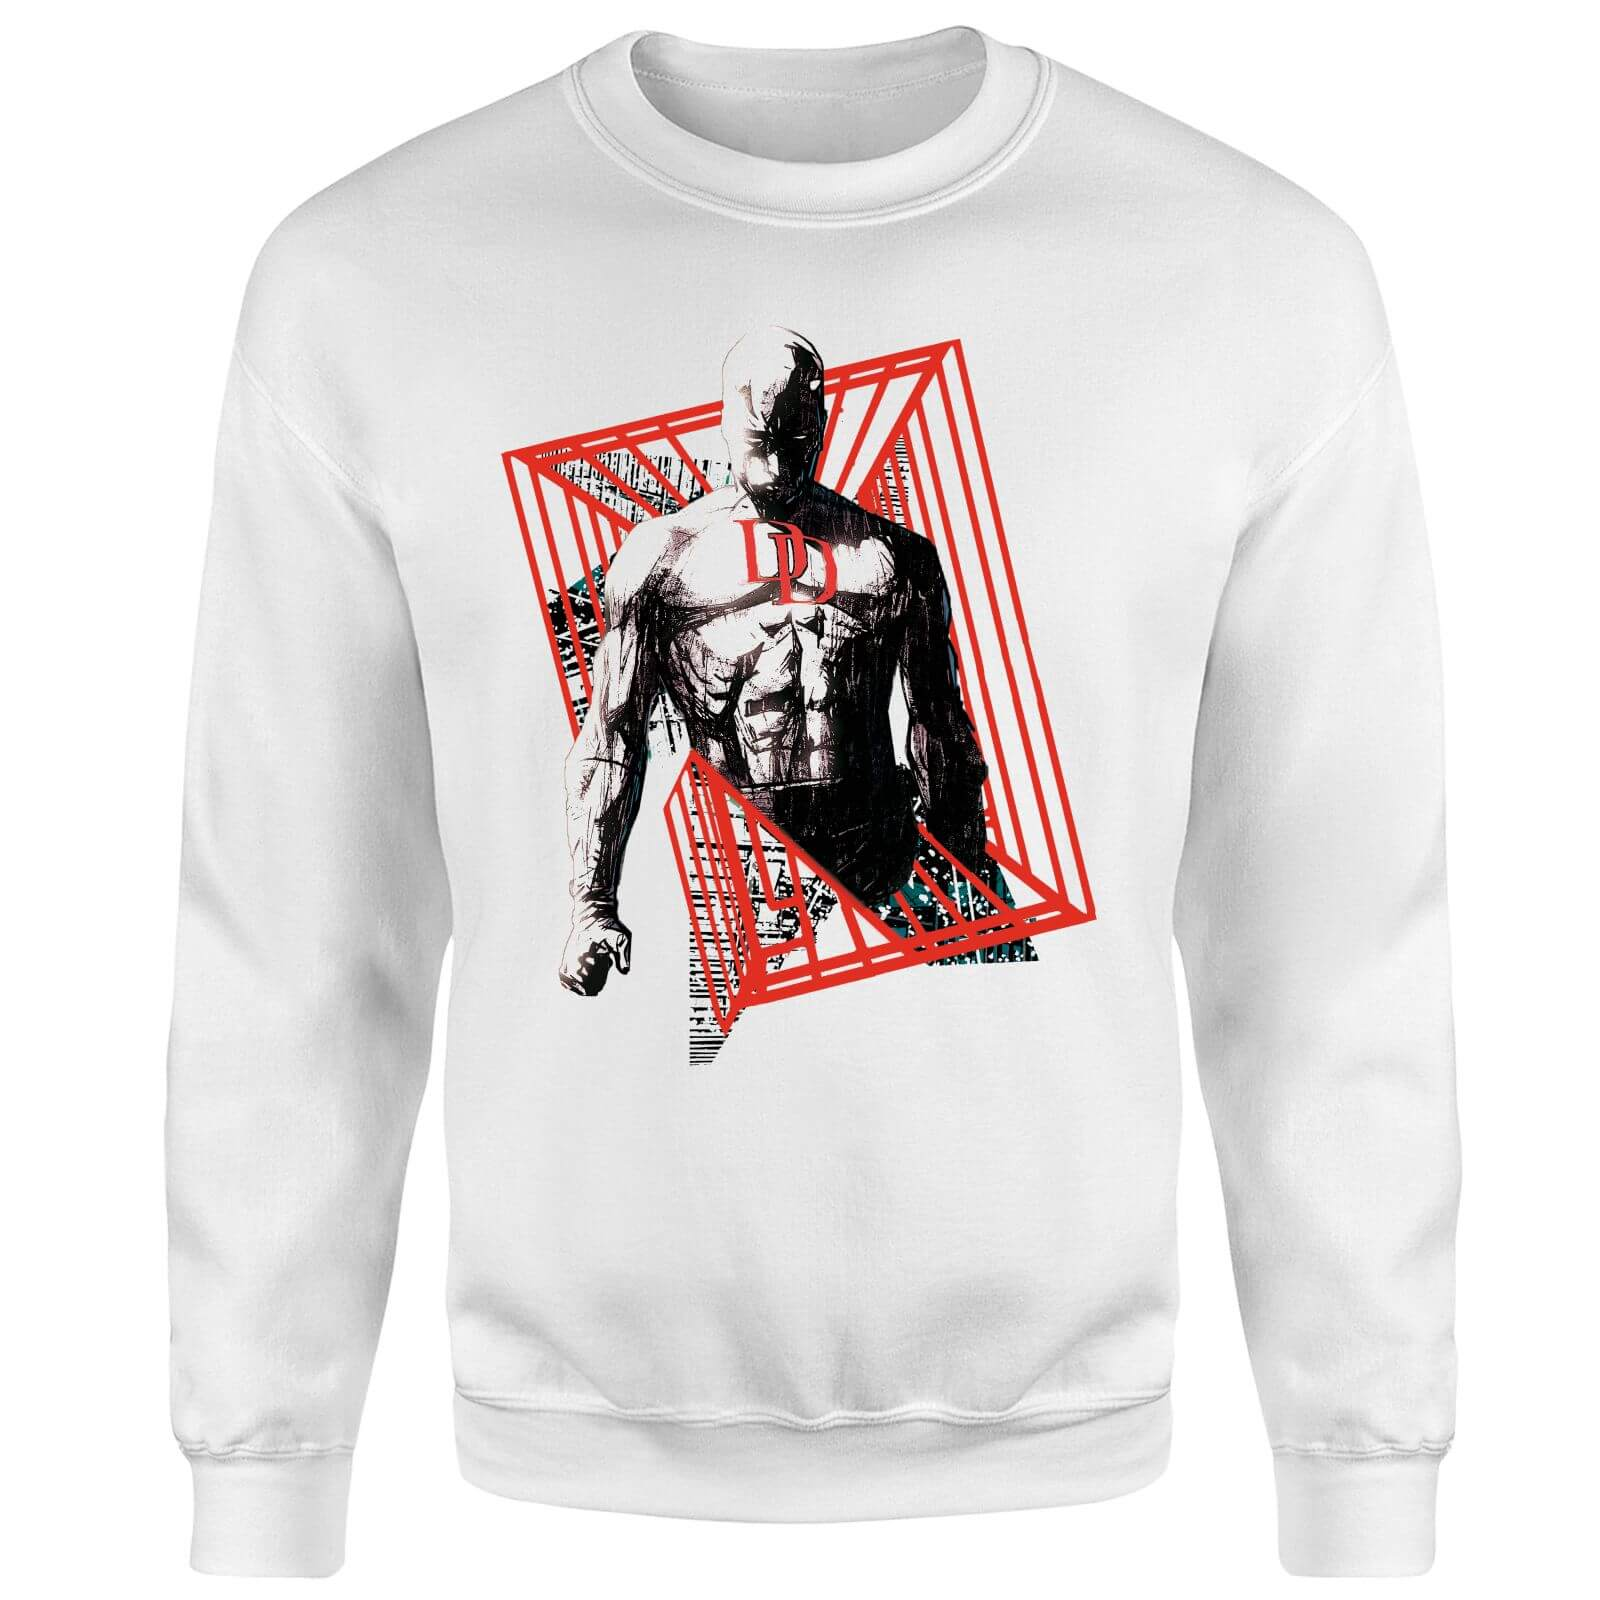 Marvel Knights Daredevil Cage Sweatshirt - White